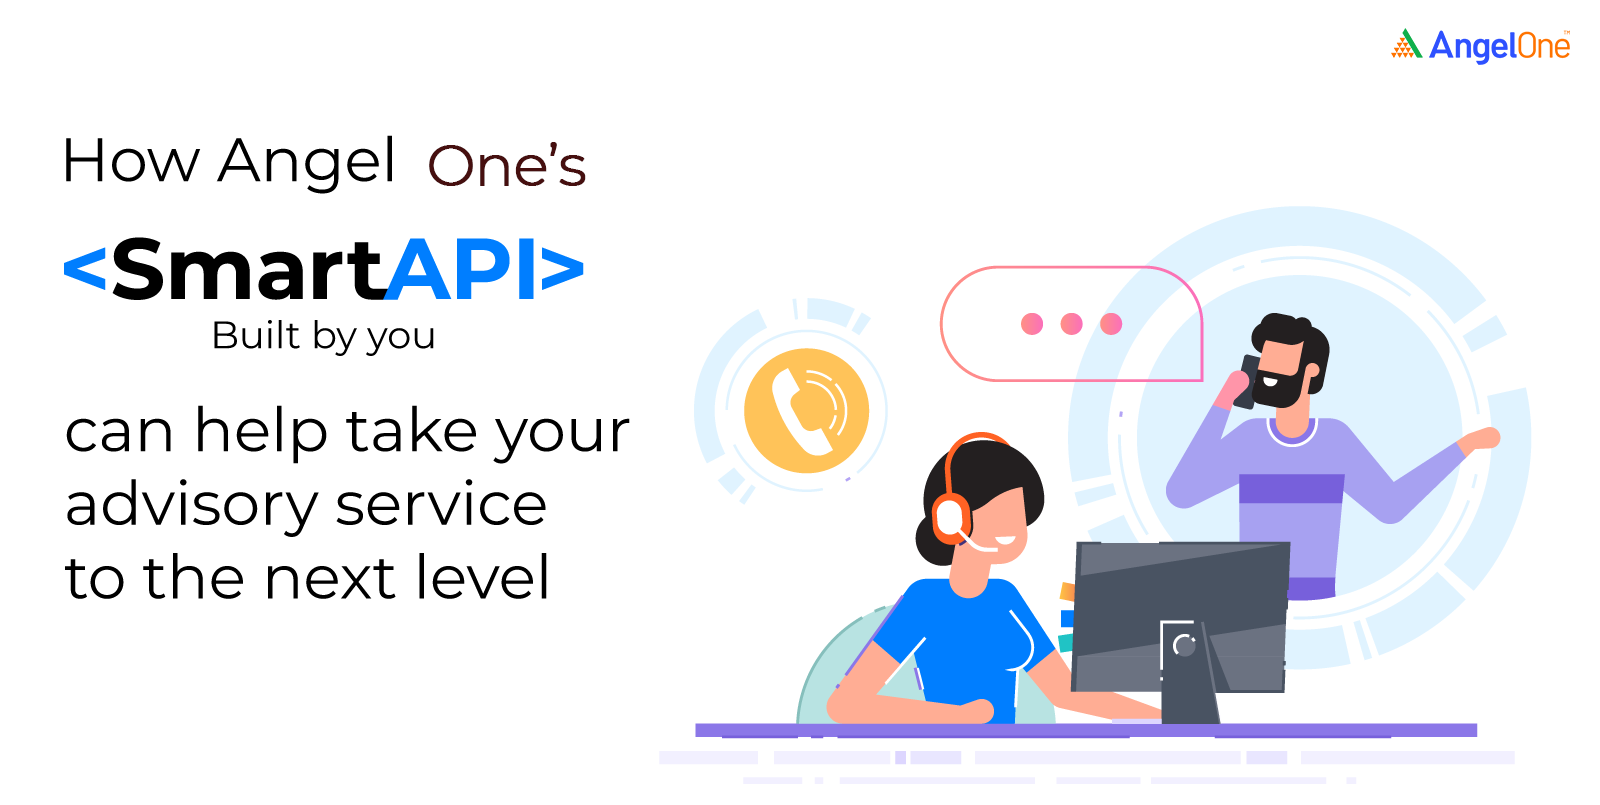 How Angel One's Smart API can help take your advisory service to the next level